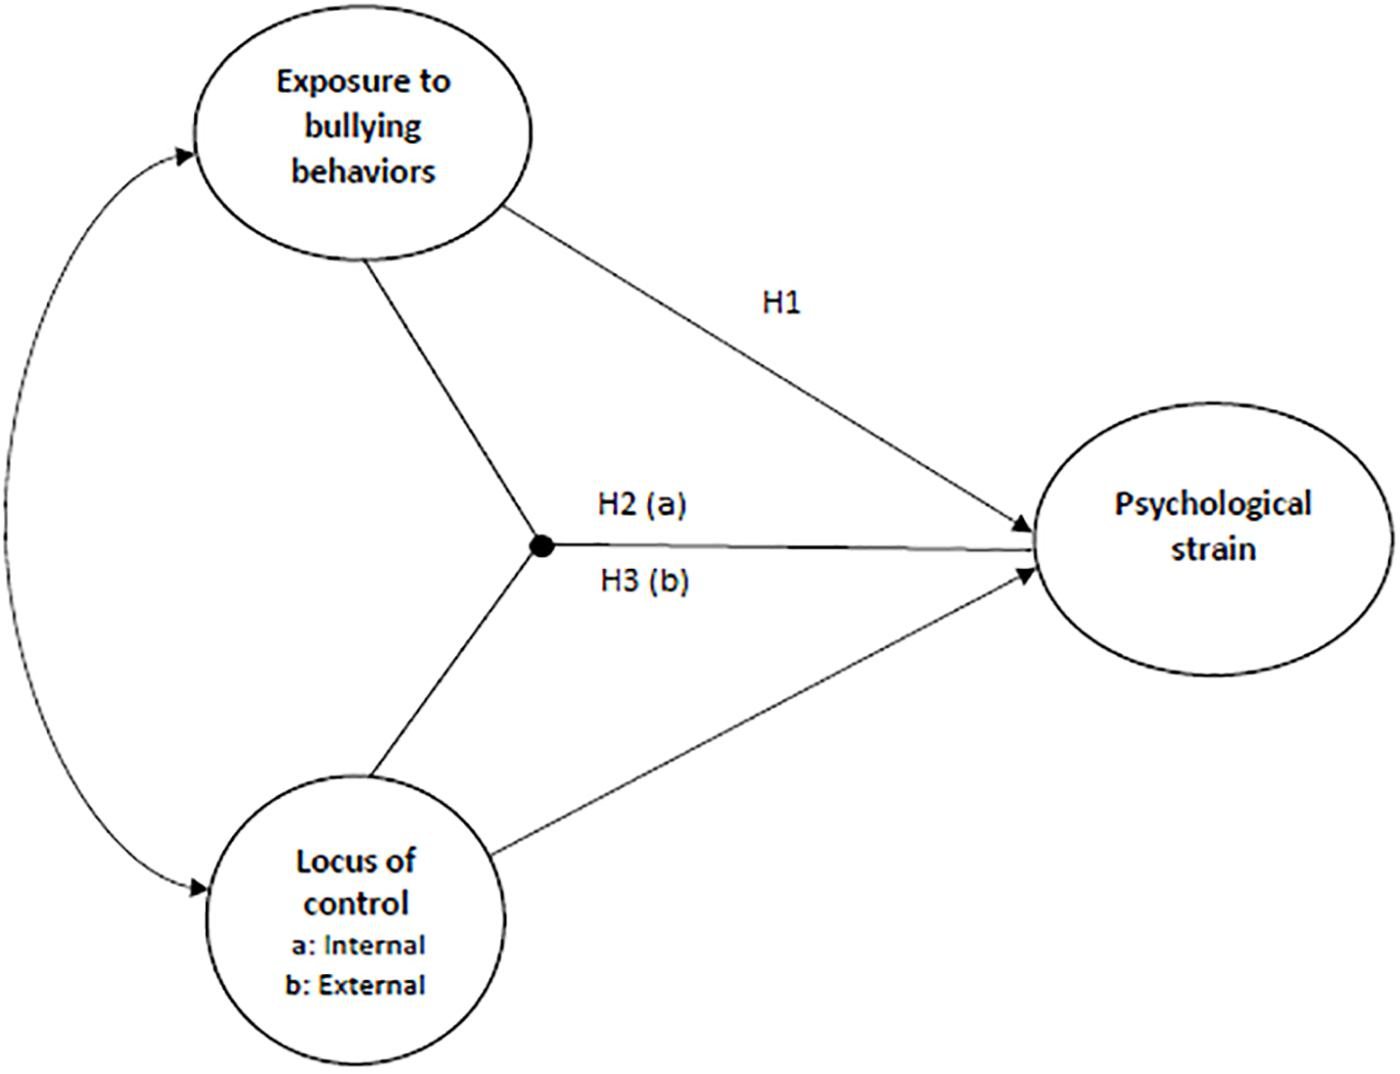 Frontiers Locus Of Control Moderates The Relationship Between Exposure To Bullying Behaviors And Psychological Strain Psychology